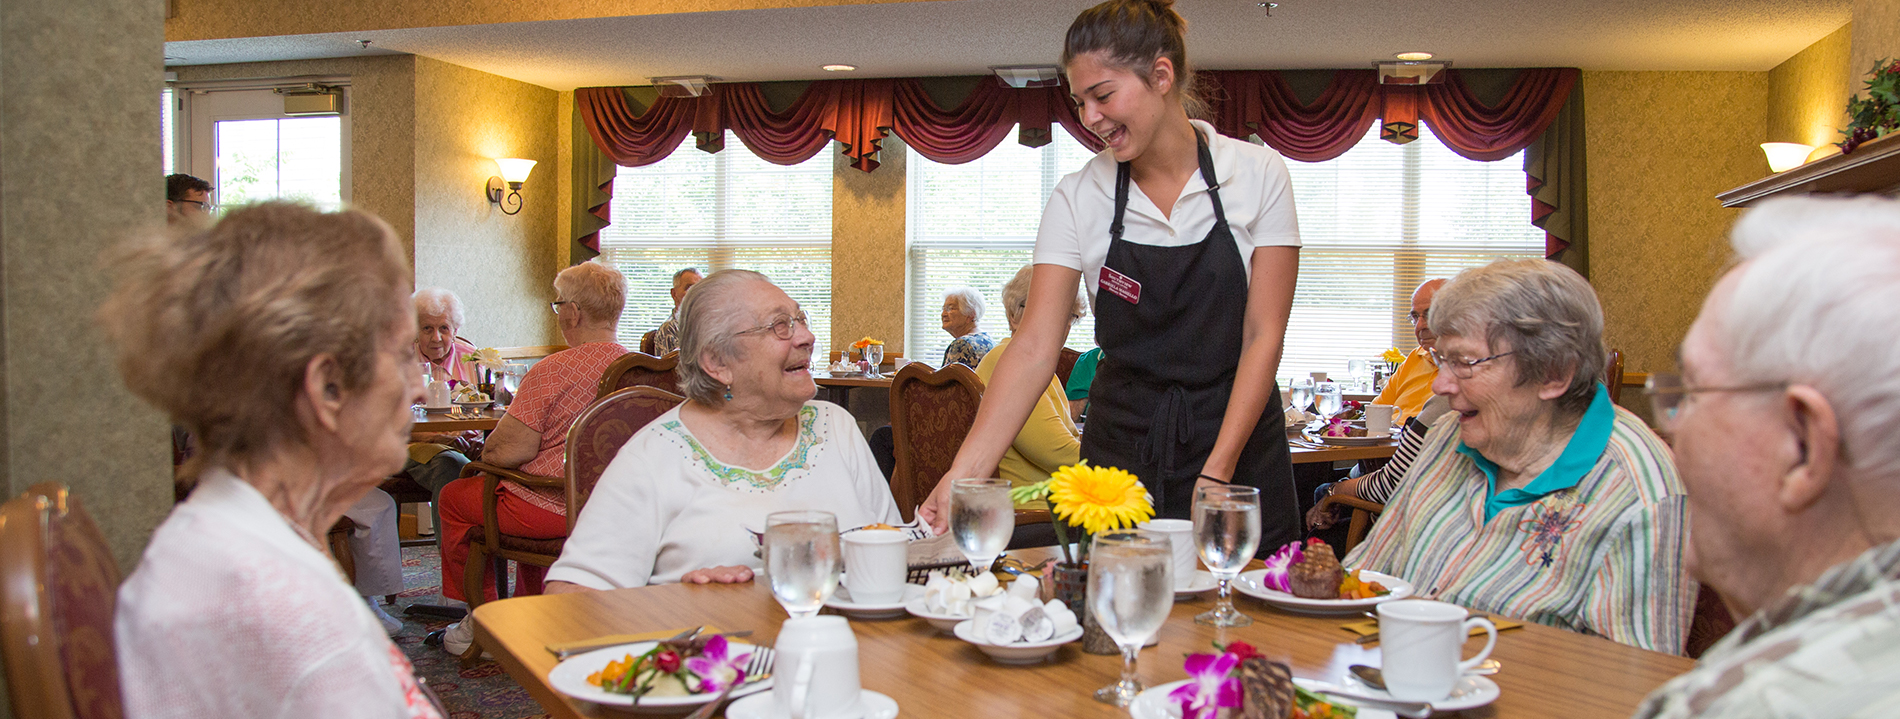 Southview Senior Living | Independent, Assisted, Memory Care Communities